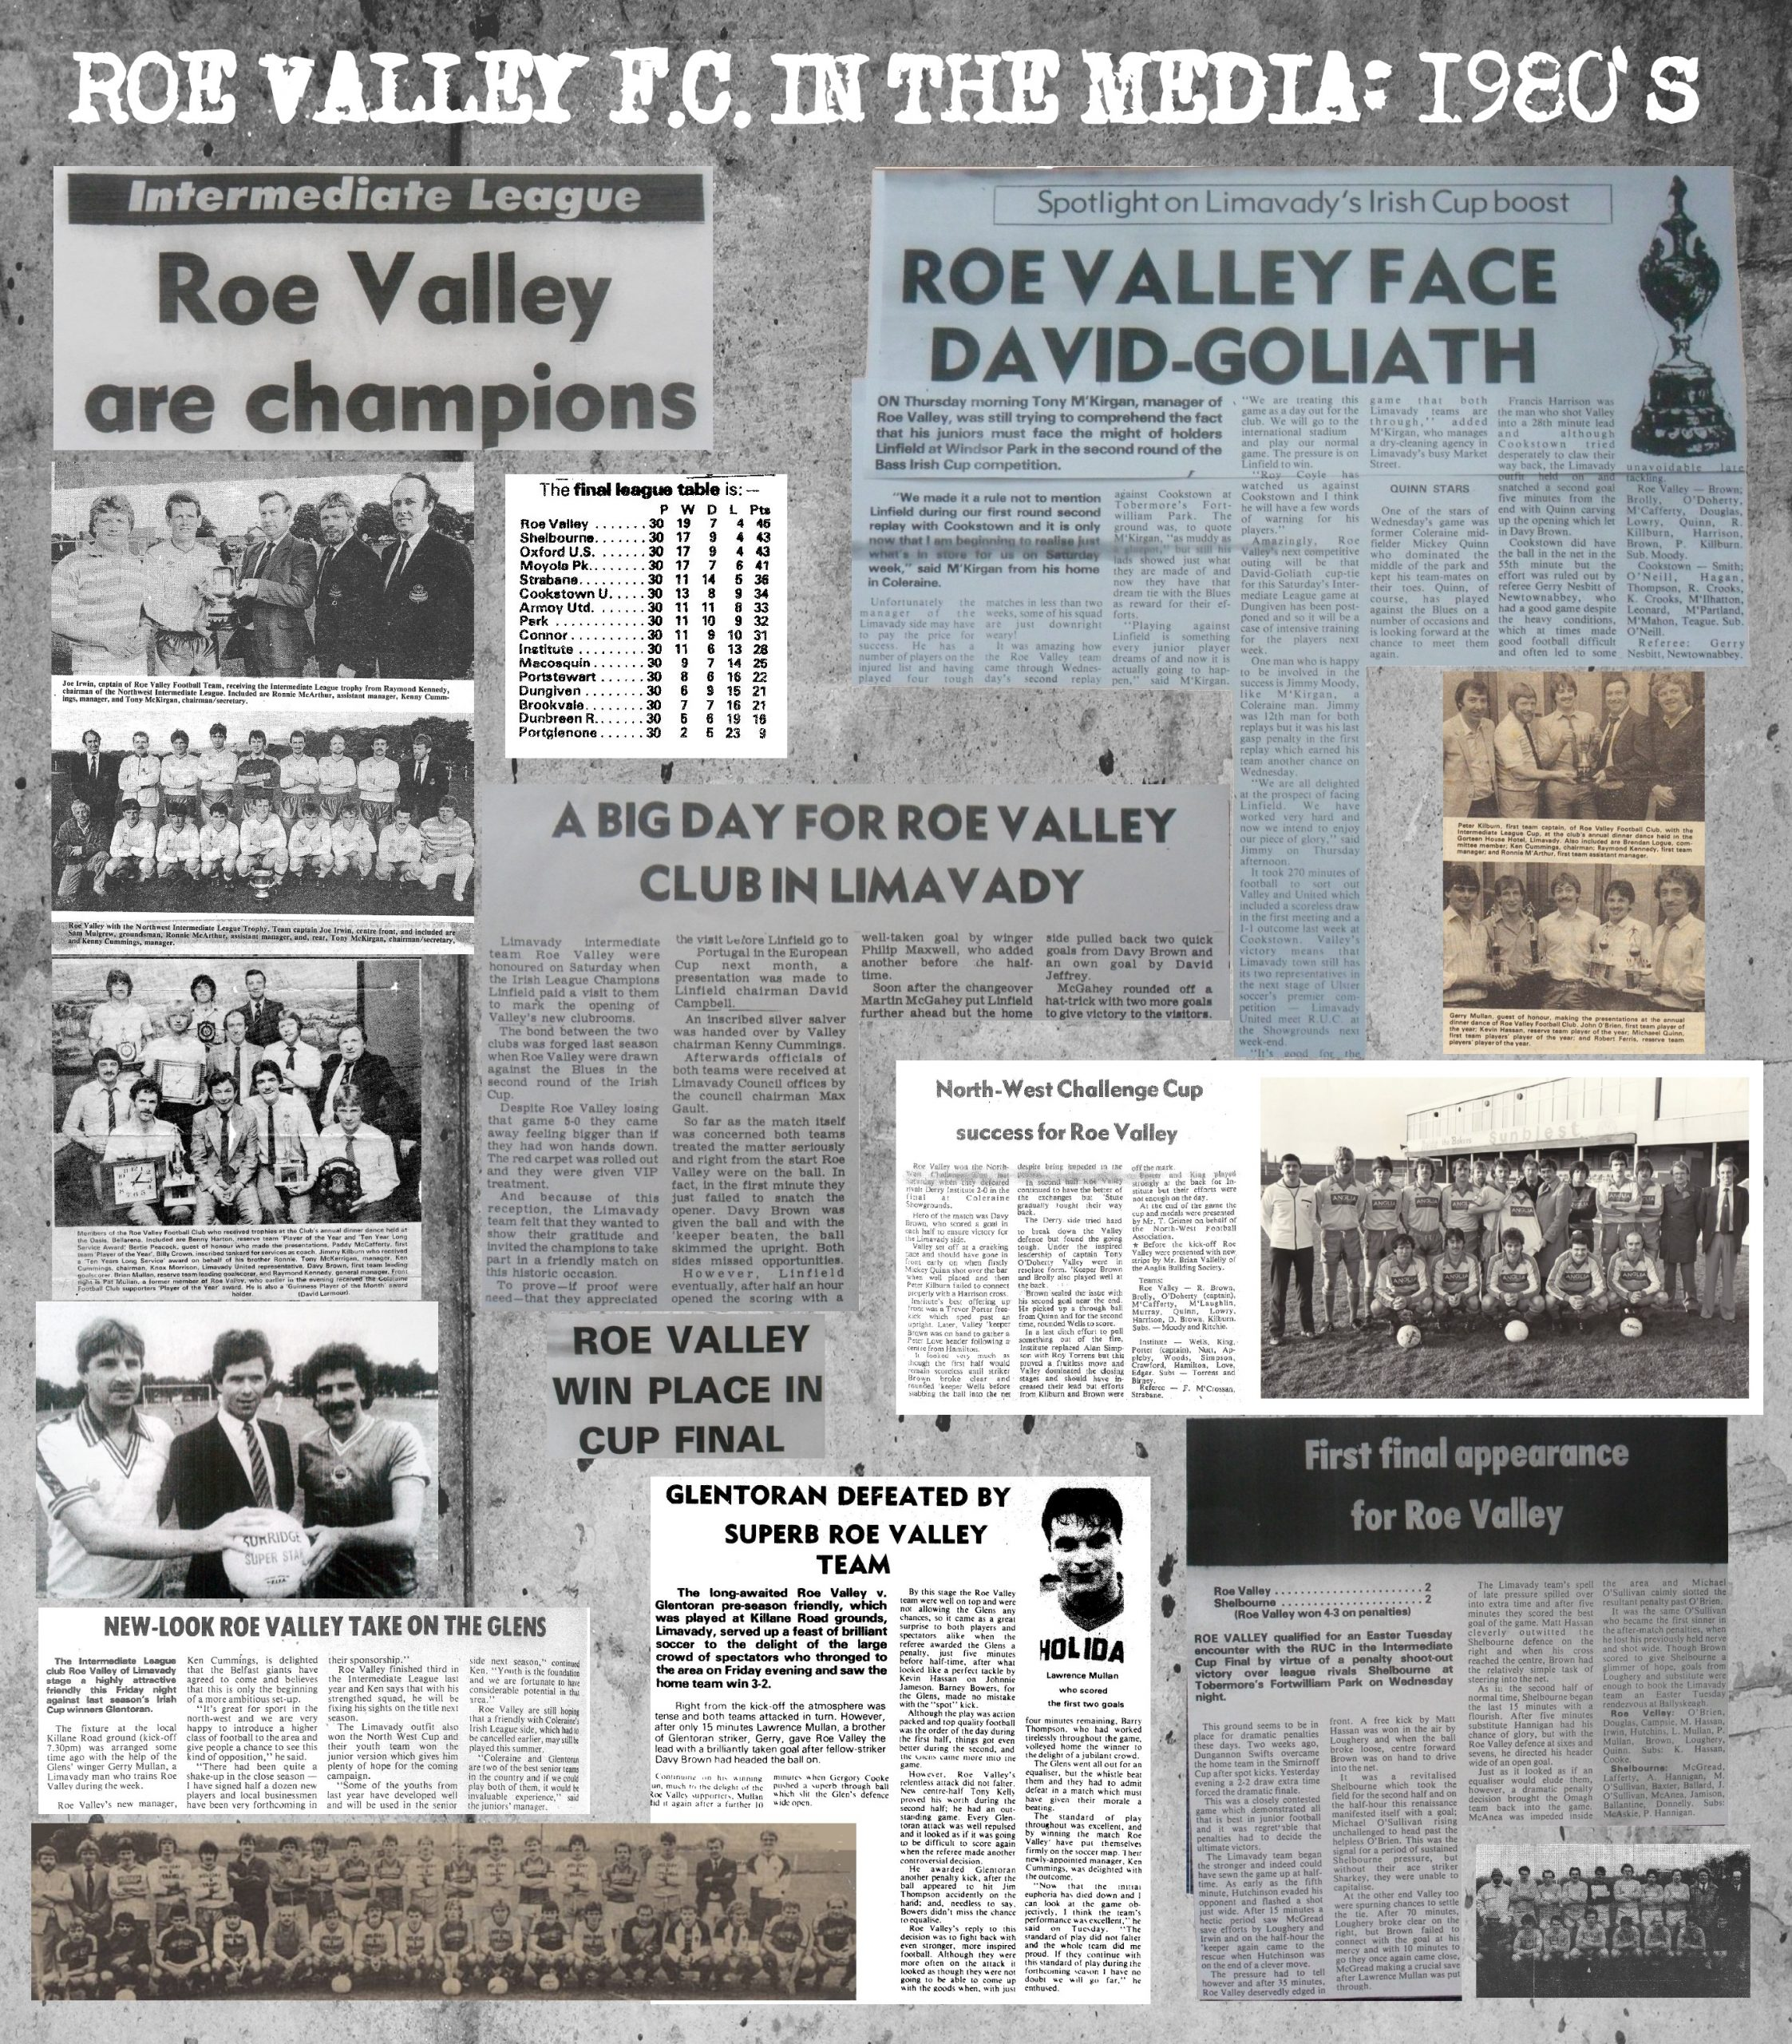 Roe Valley Football Club in the Media: 1980's PDF